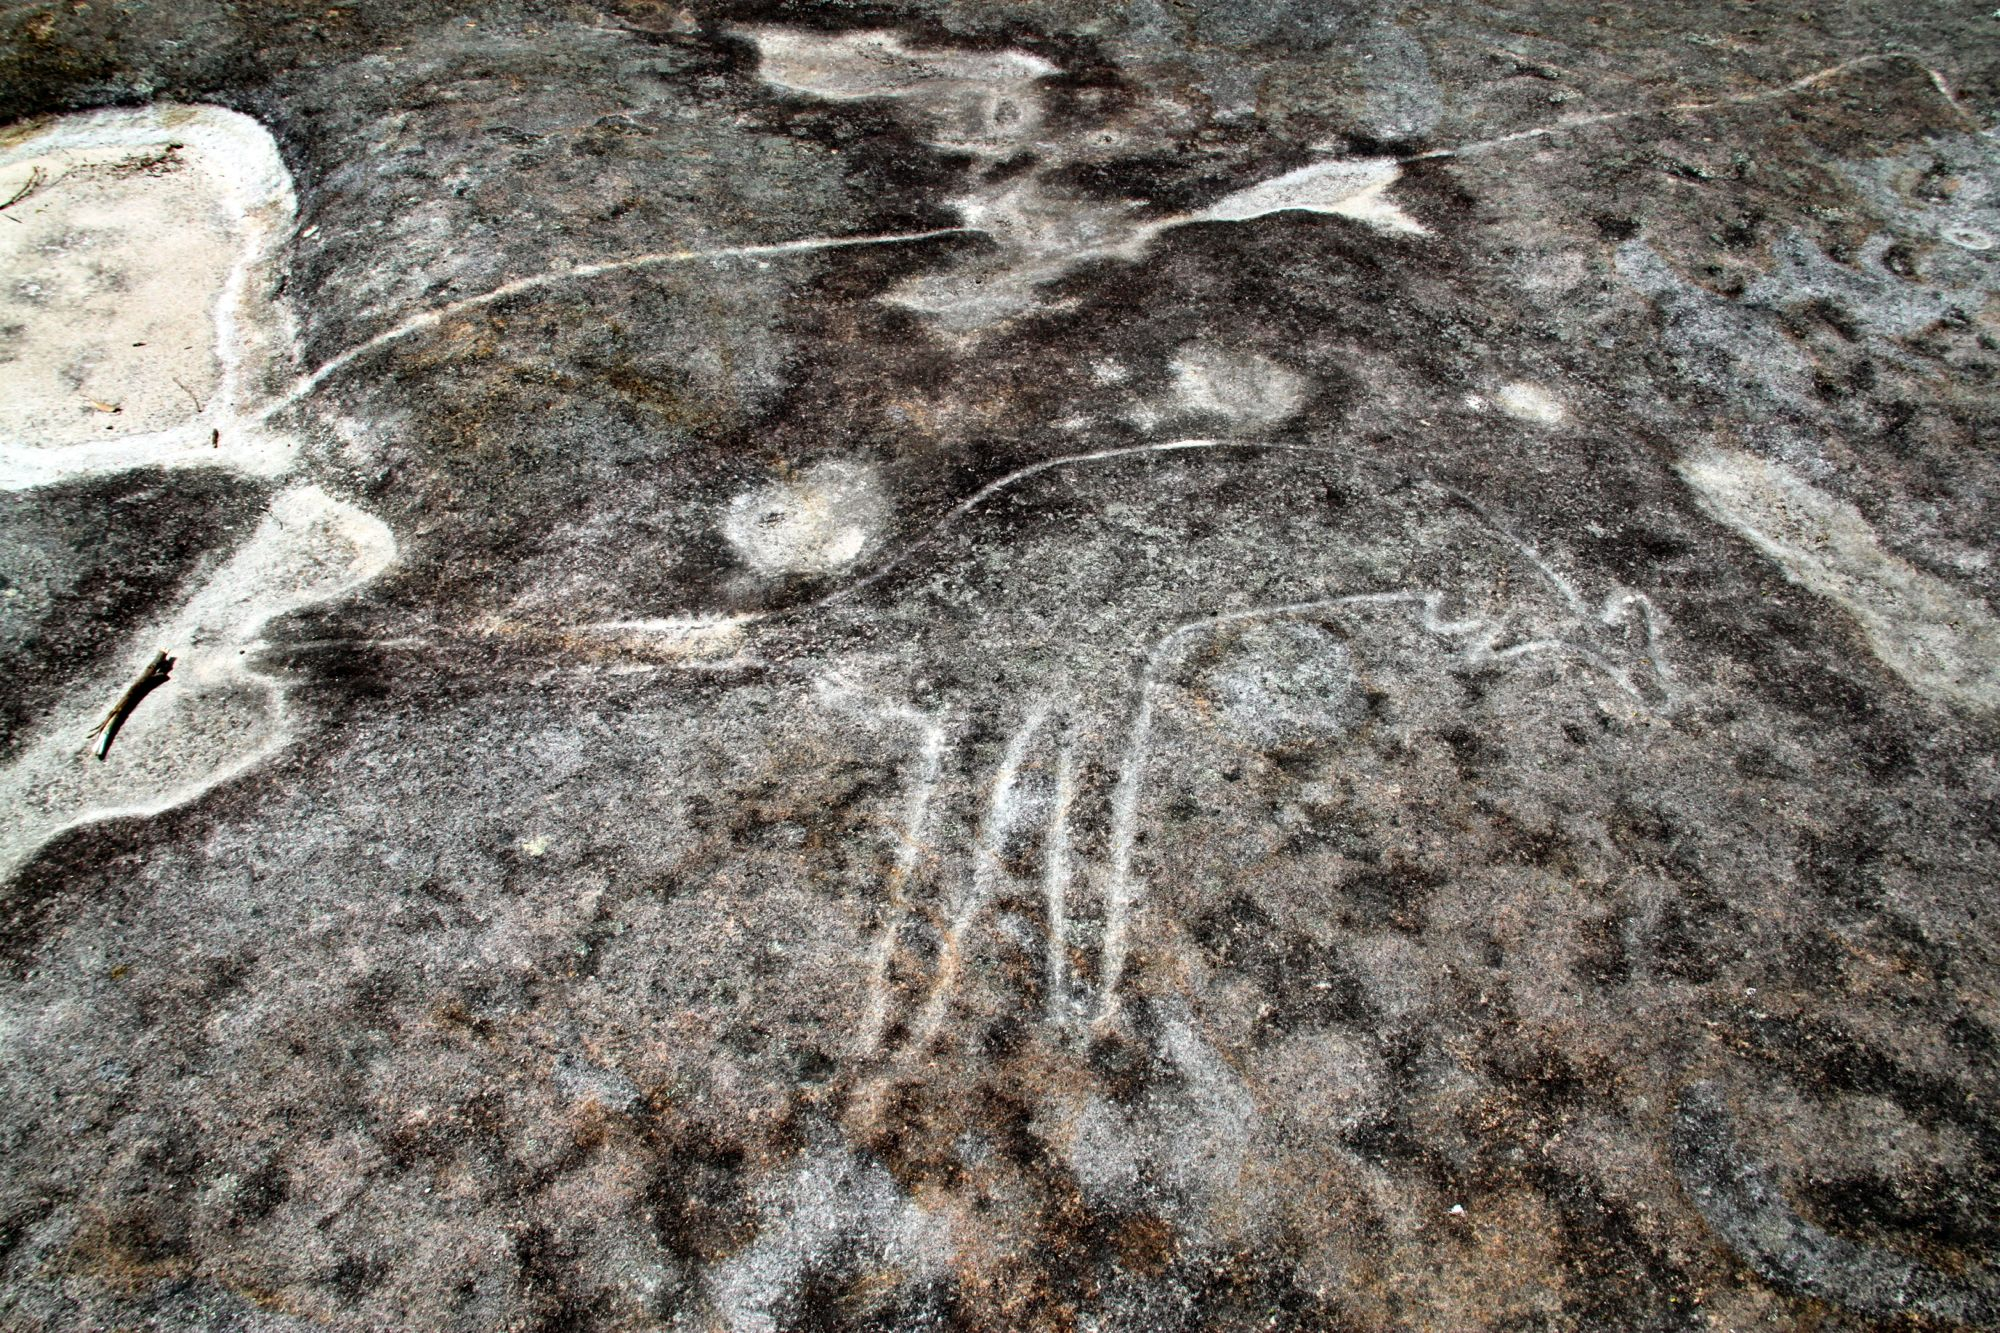 Dharawal rock engravings aboriginal carving of